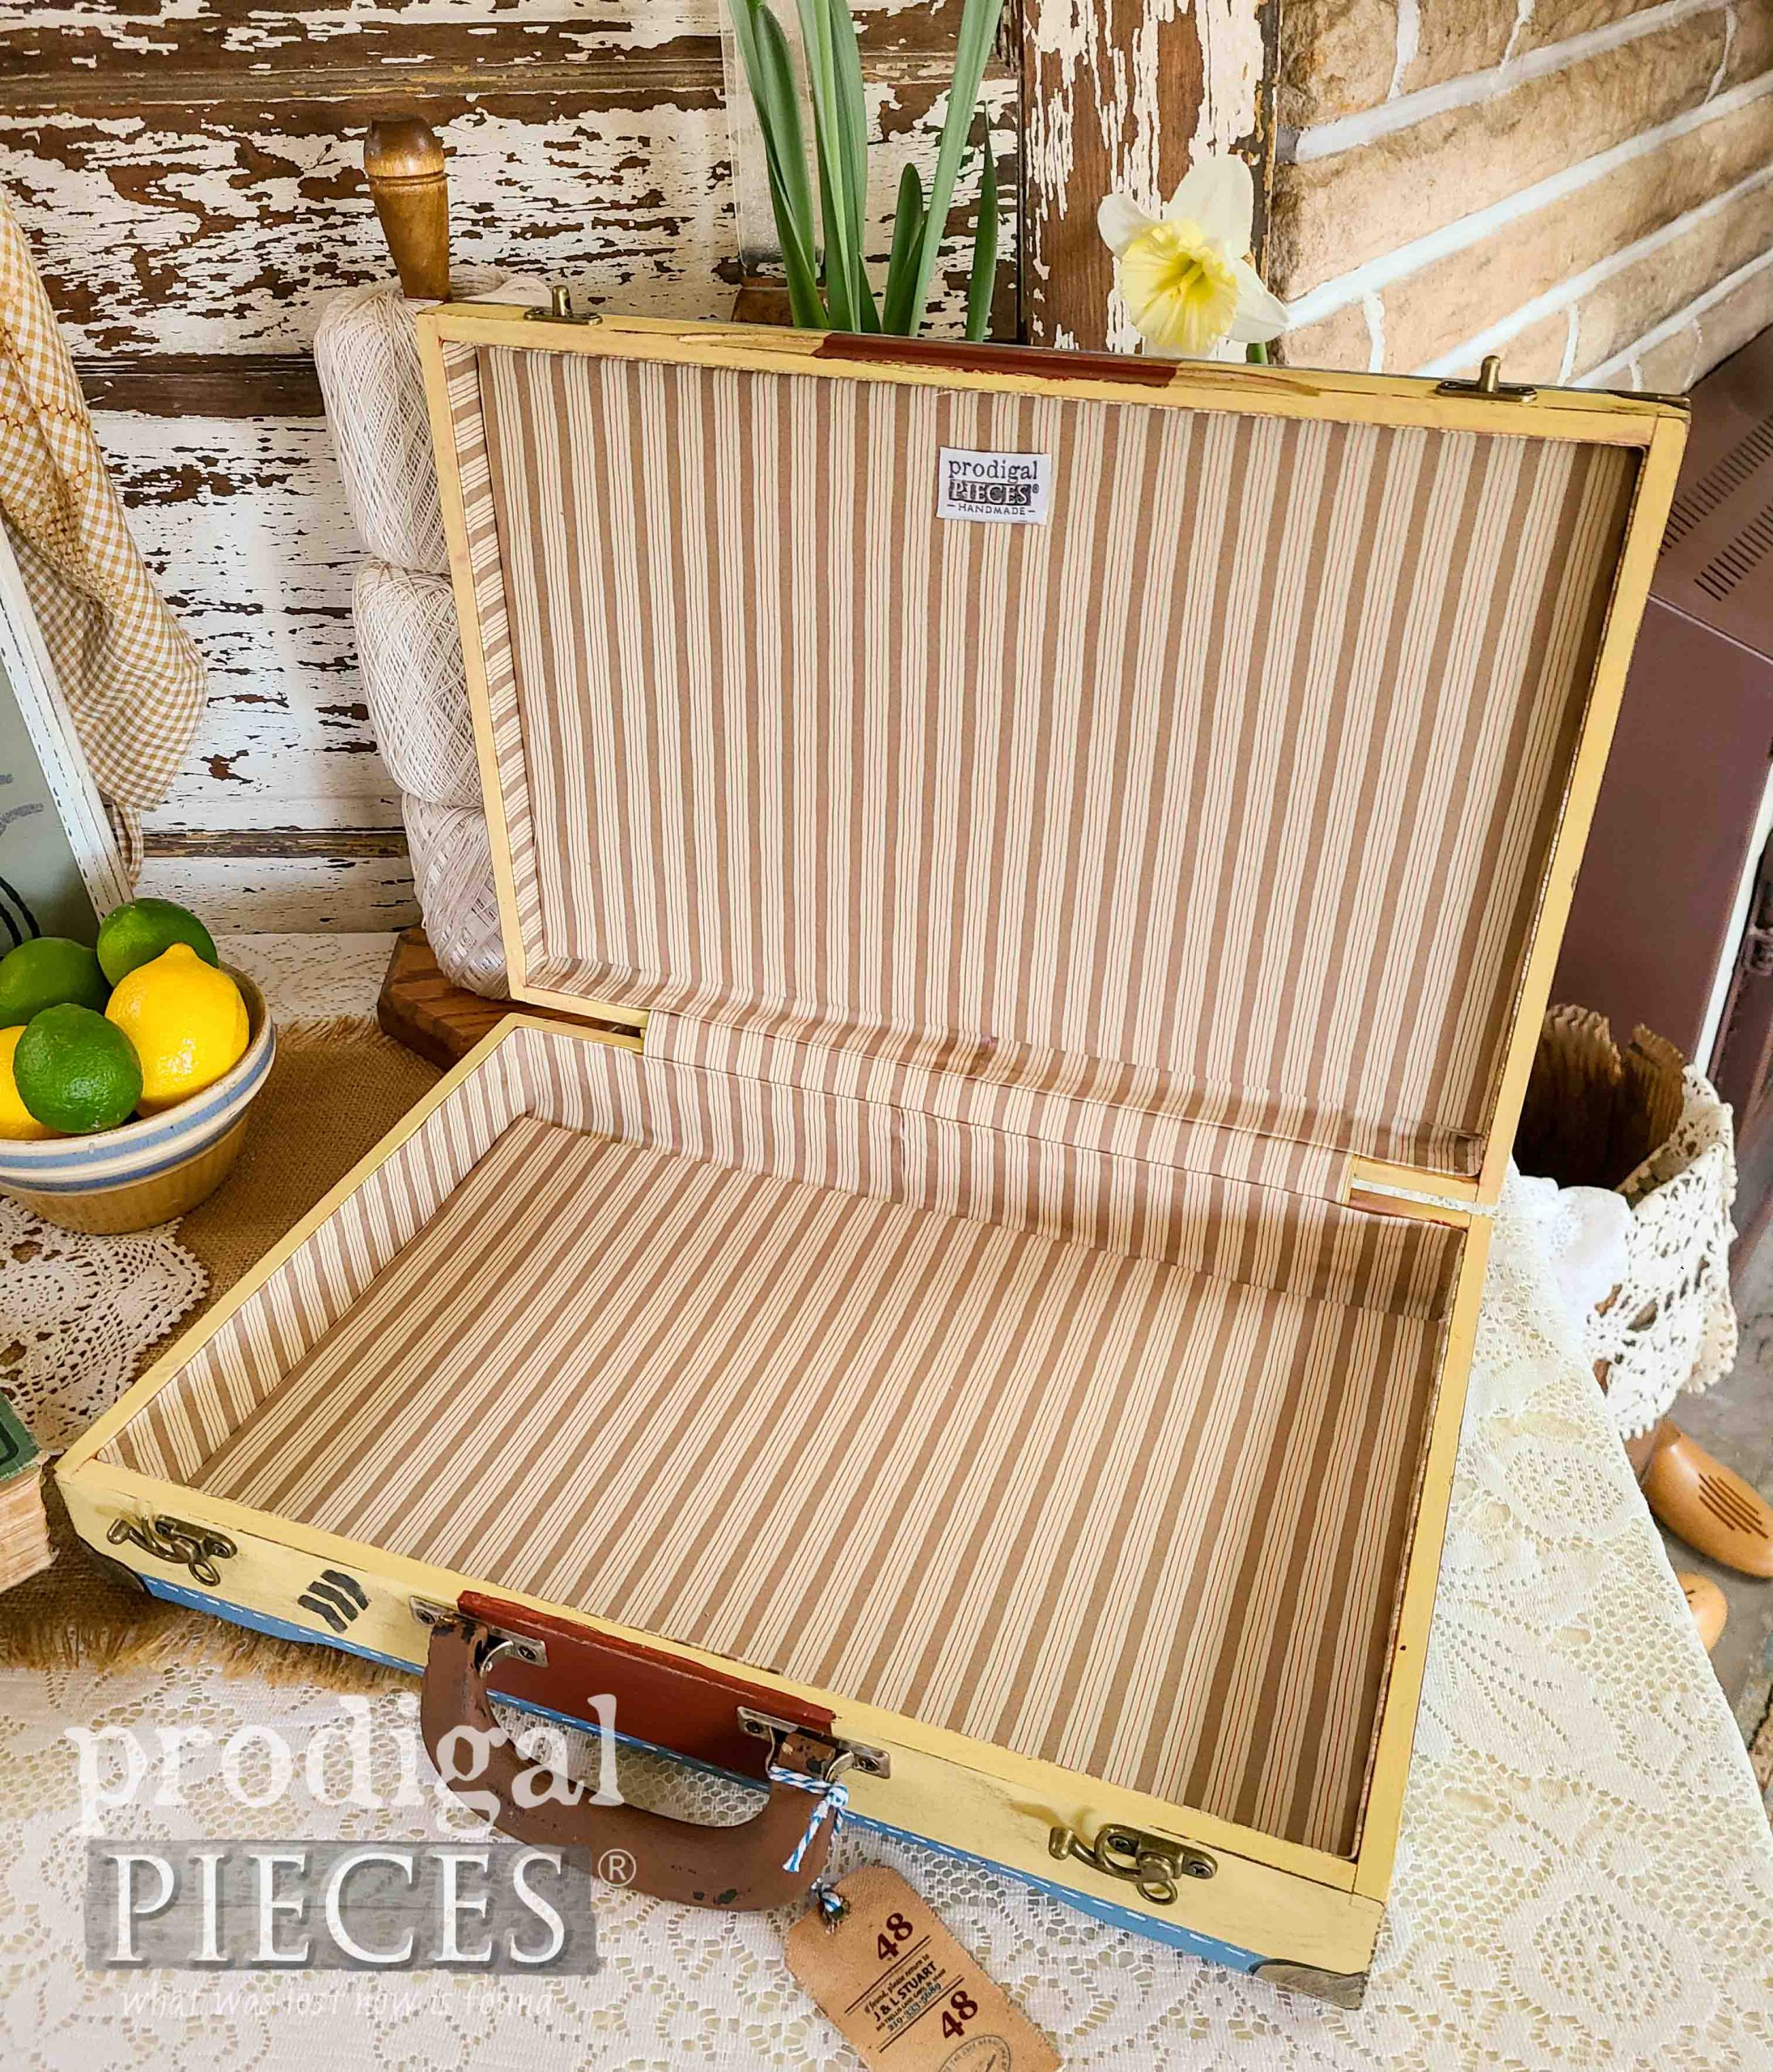 Ticking Stripe Interior of Repurposed Silverware Boxes by Larissa of Prodigal Pieces | prodigalpieces.com #prodigalpieces #vintage #spring #home #homedecor